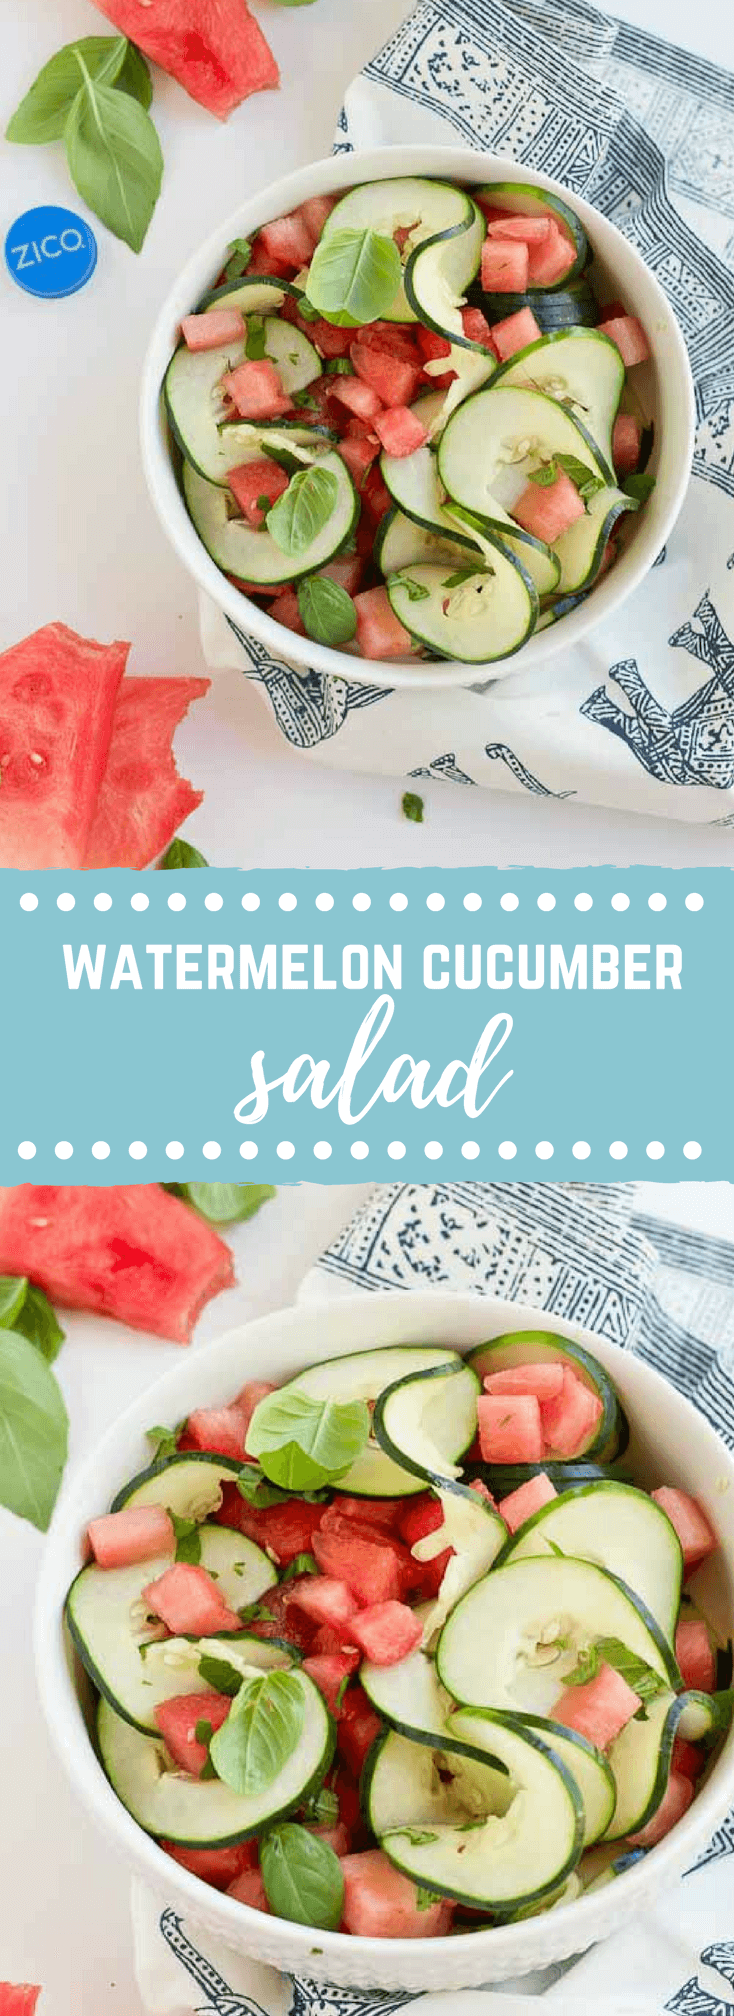 Watermelon Cucumber Salad - Just 5 ingredients. Watermelon, cucumber, basil and coconut water will hydrate and make you feel refreshed from the inside out.